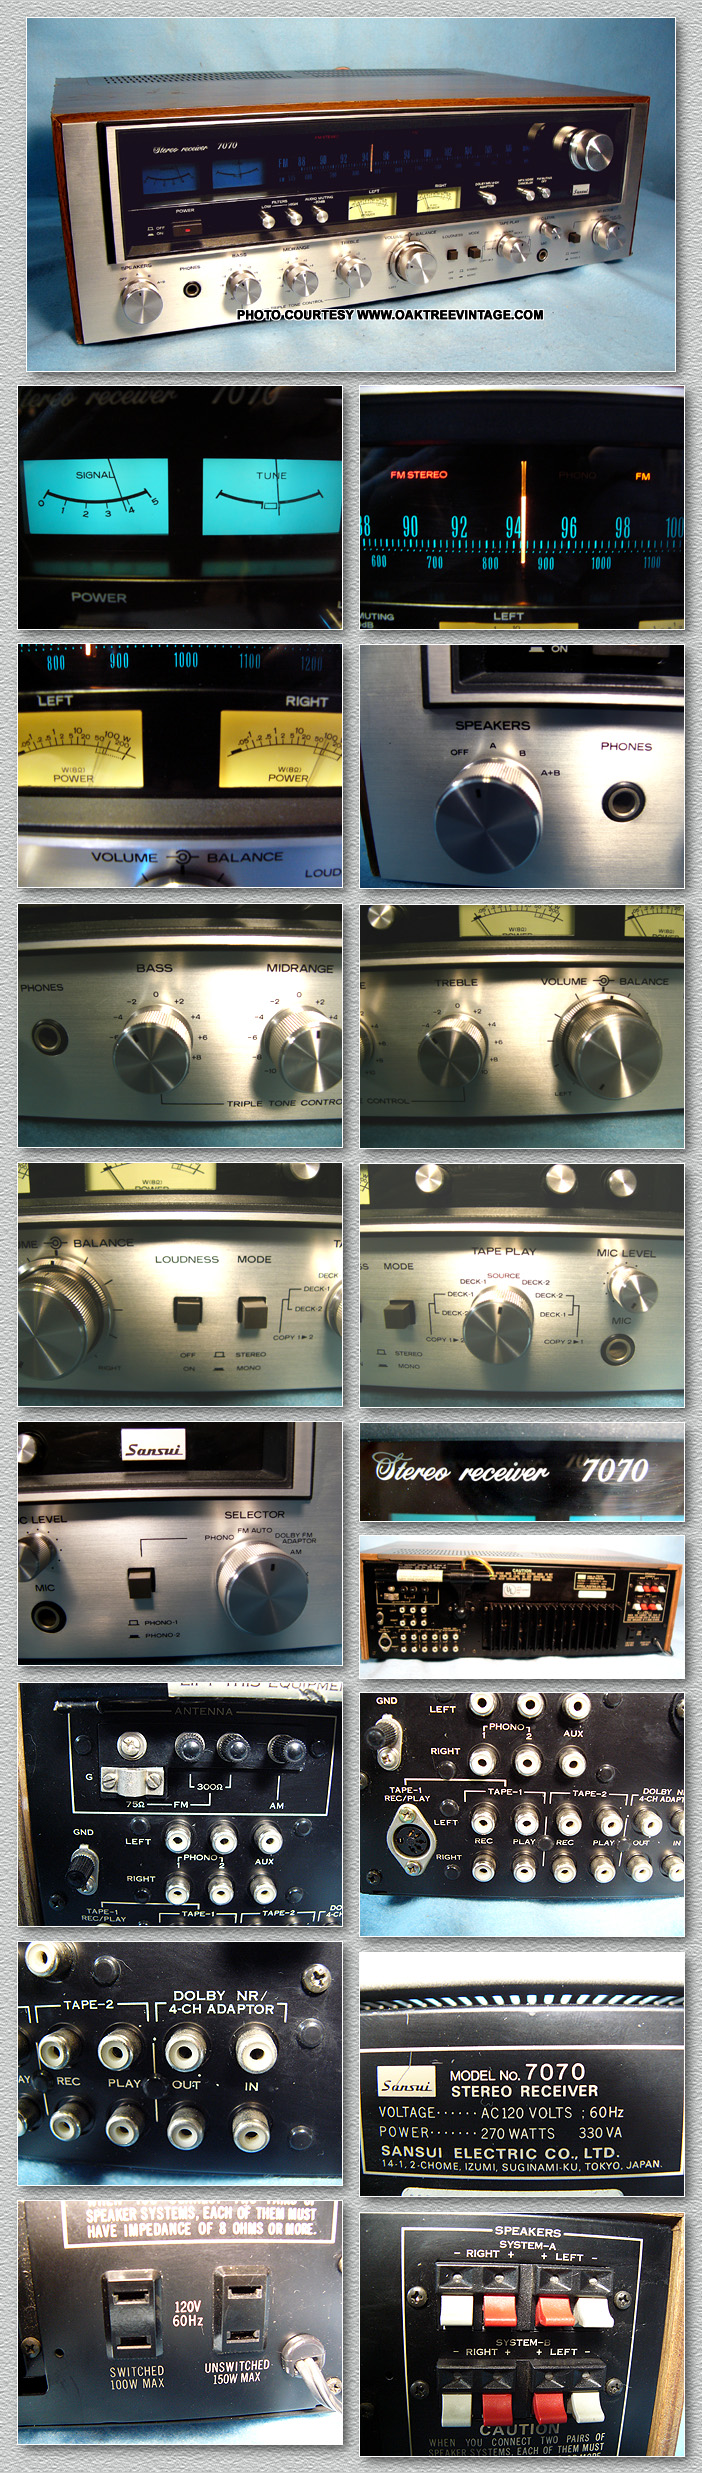 Vintage Sansui Stereo Parts Spares Circuit Board Buy Receiver Boardfm 7070 1 Parting Out Unit Looks Near New Very Clean Many Of The Such As Switches Pots